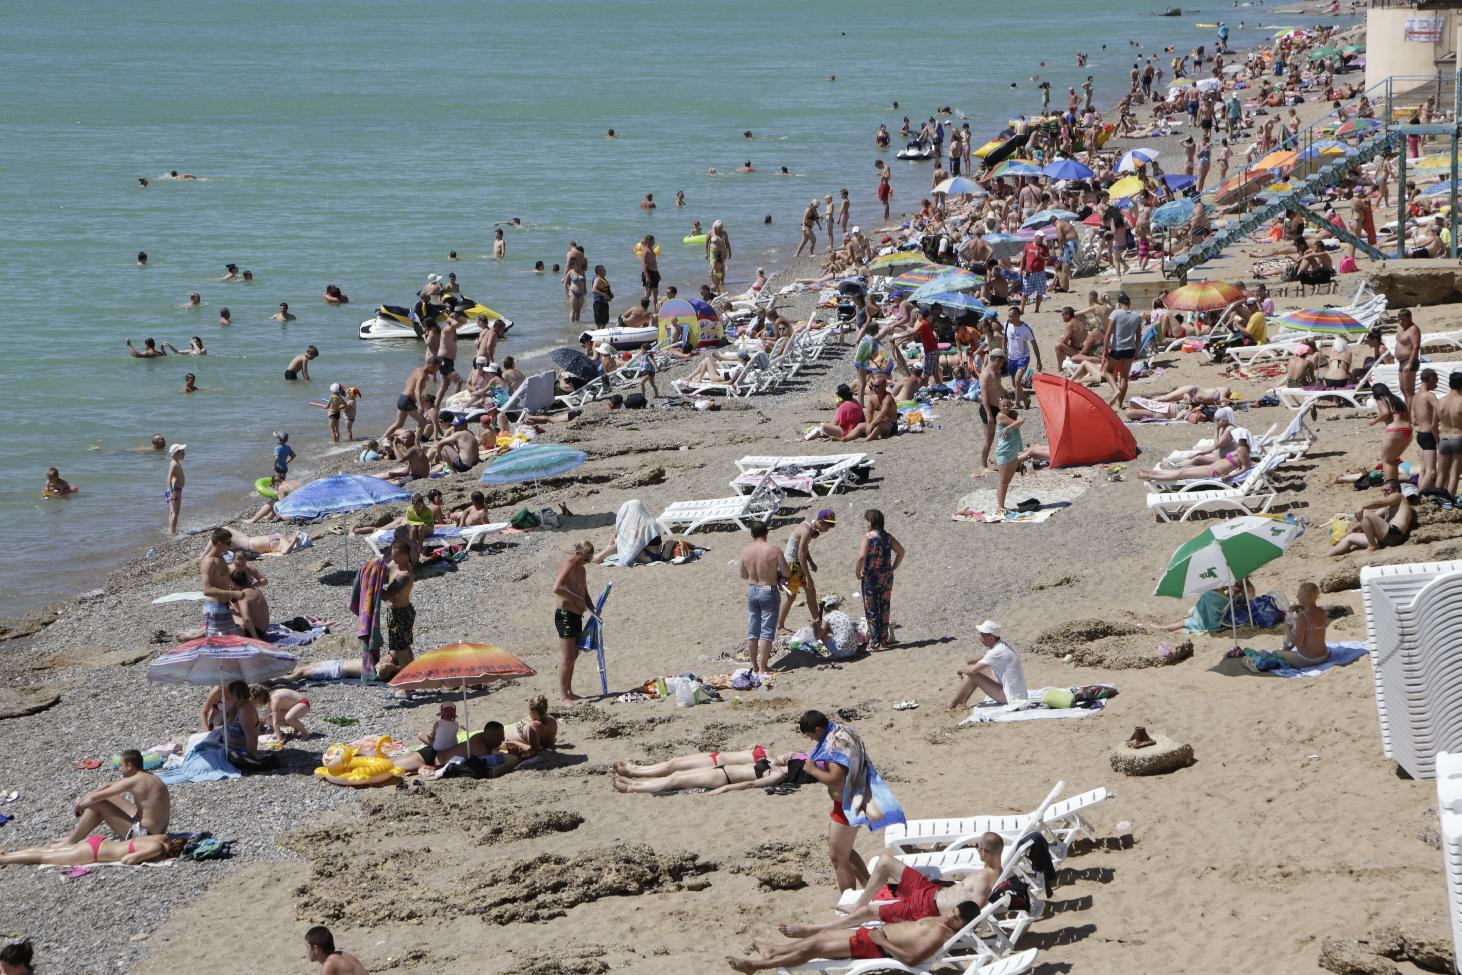 File picture shows rourists enjoying the sun by the seaside on a beach some 40km from the Crimean capital Simferopol, on June 29, 2014 (AFP Photo/Max Vetrov)